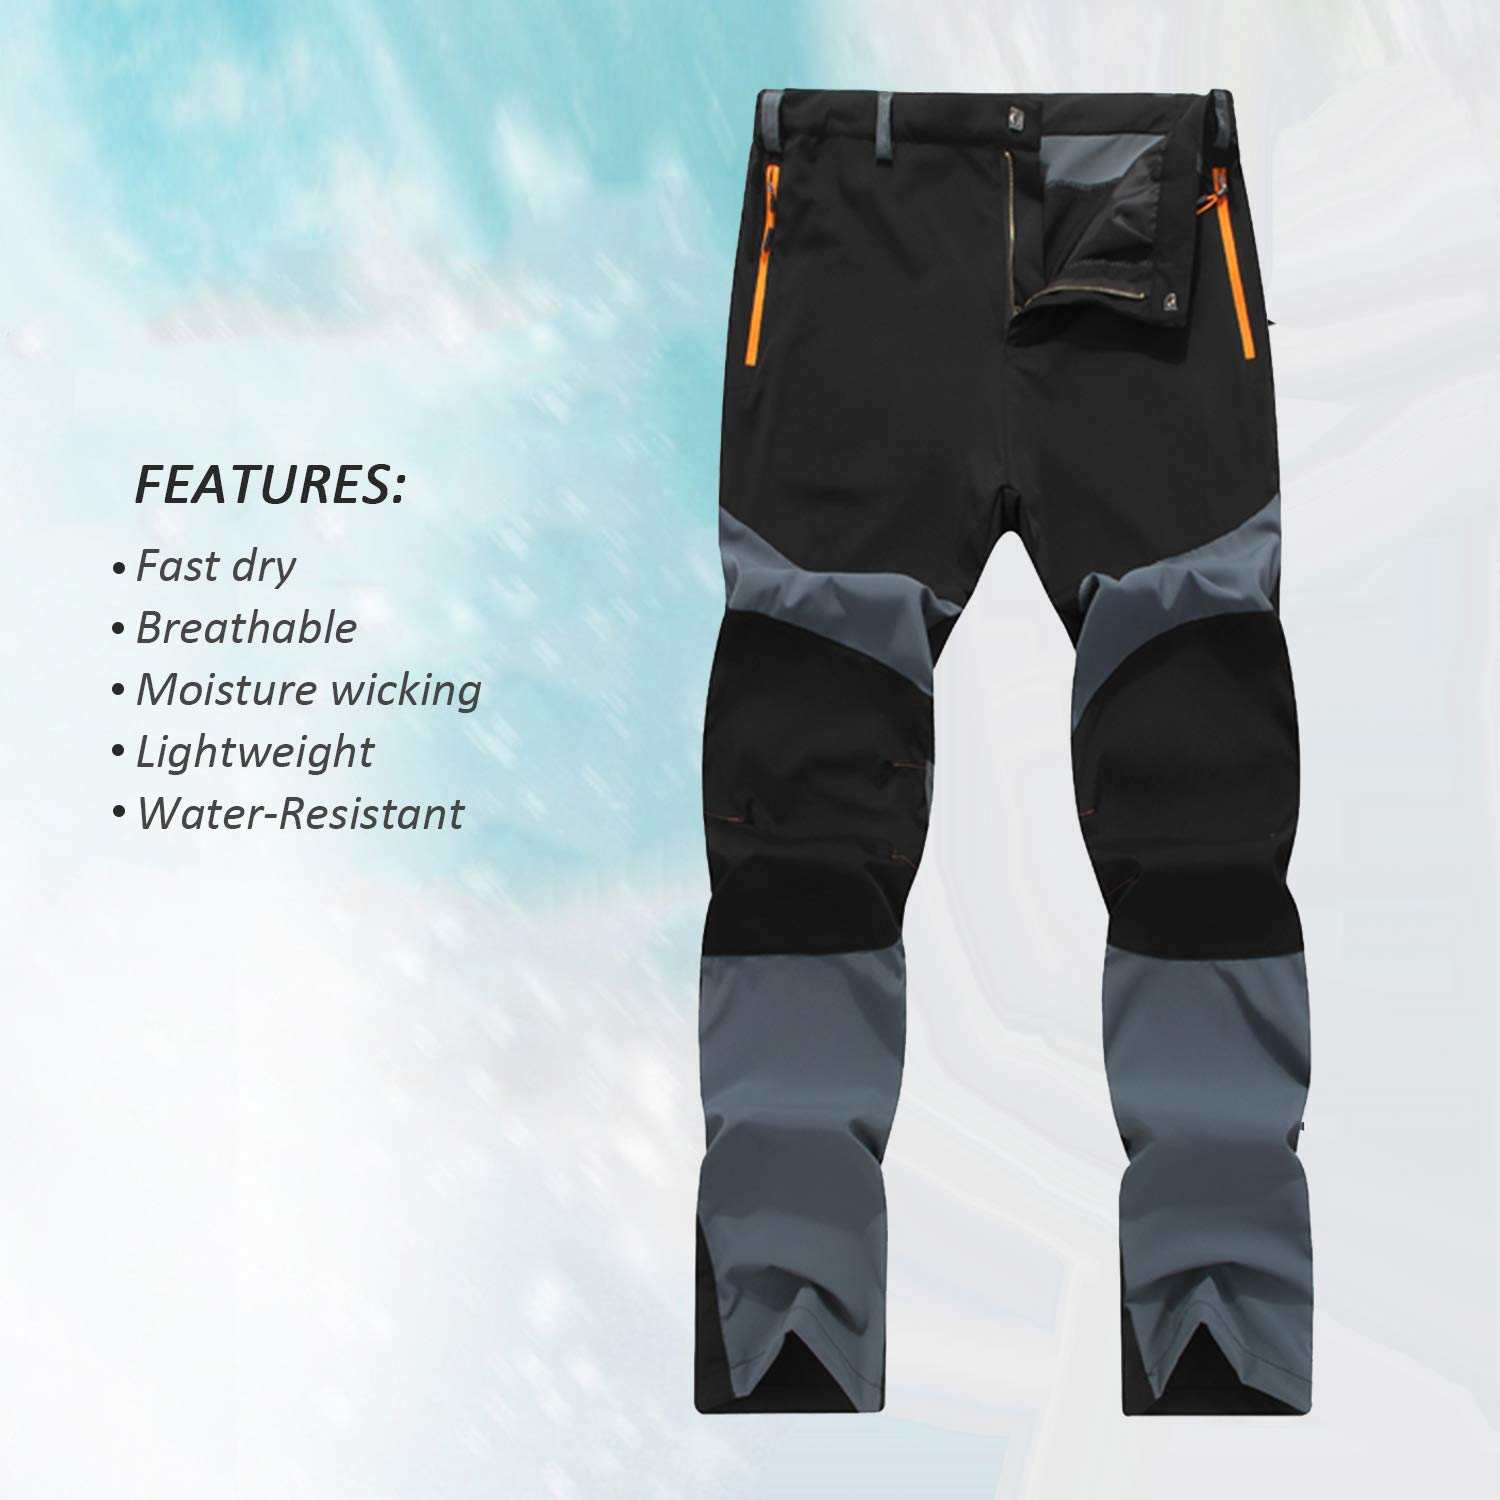 7VSTOHS Men/'s Quick Dry Lightweight Hiking Trousers Outdoor Breathable Comfy Sportswear Climbing Walking Trousers